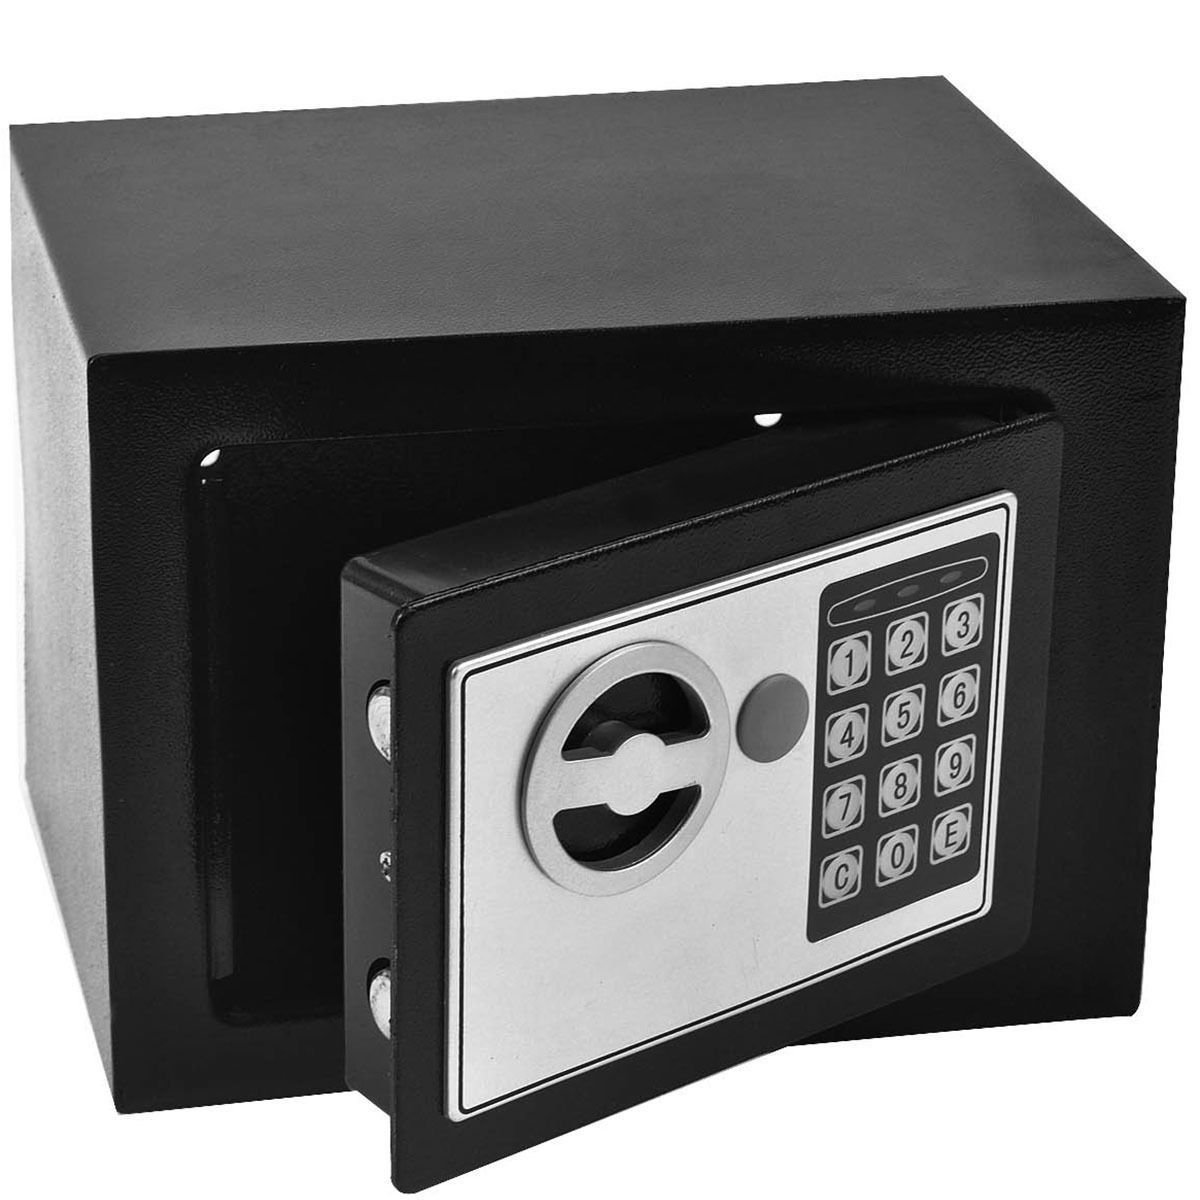 Safstar Electronic Digital Security Lock Box Wall Cabinet Safe for Jewelry Cash Valuable Home Office Hotel by S AFSTAR